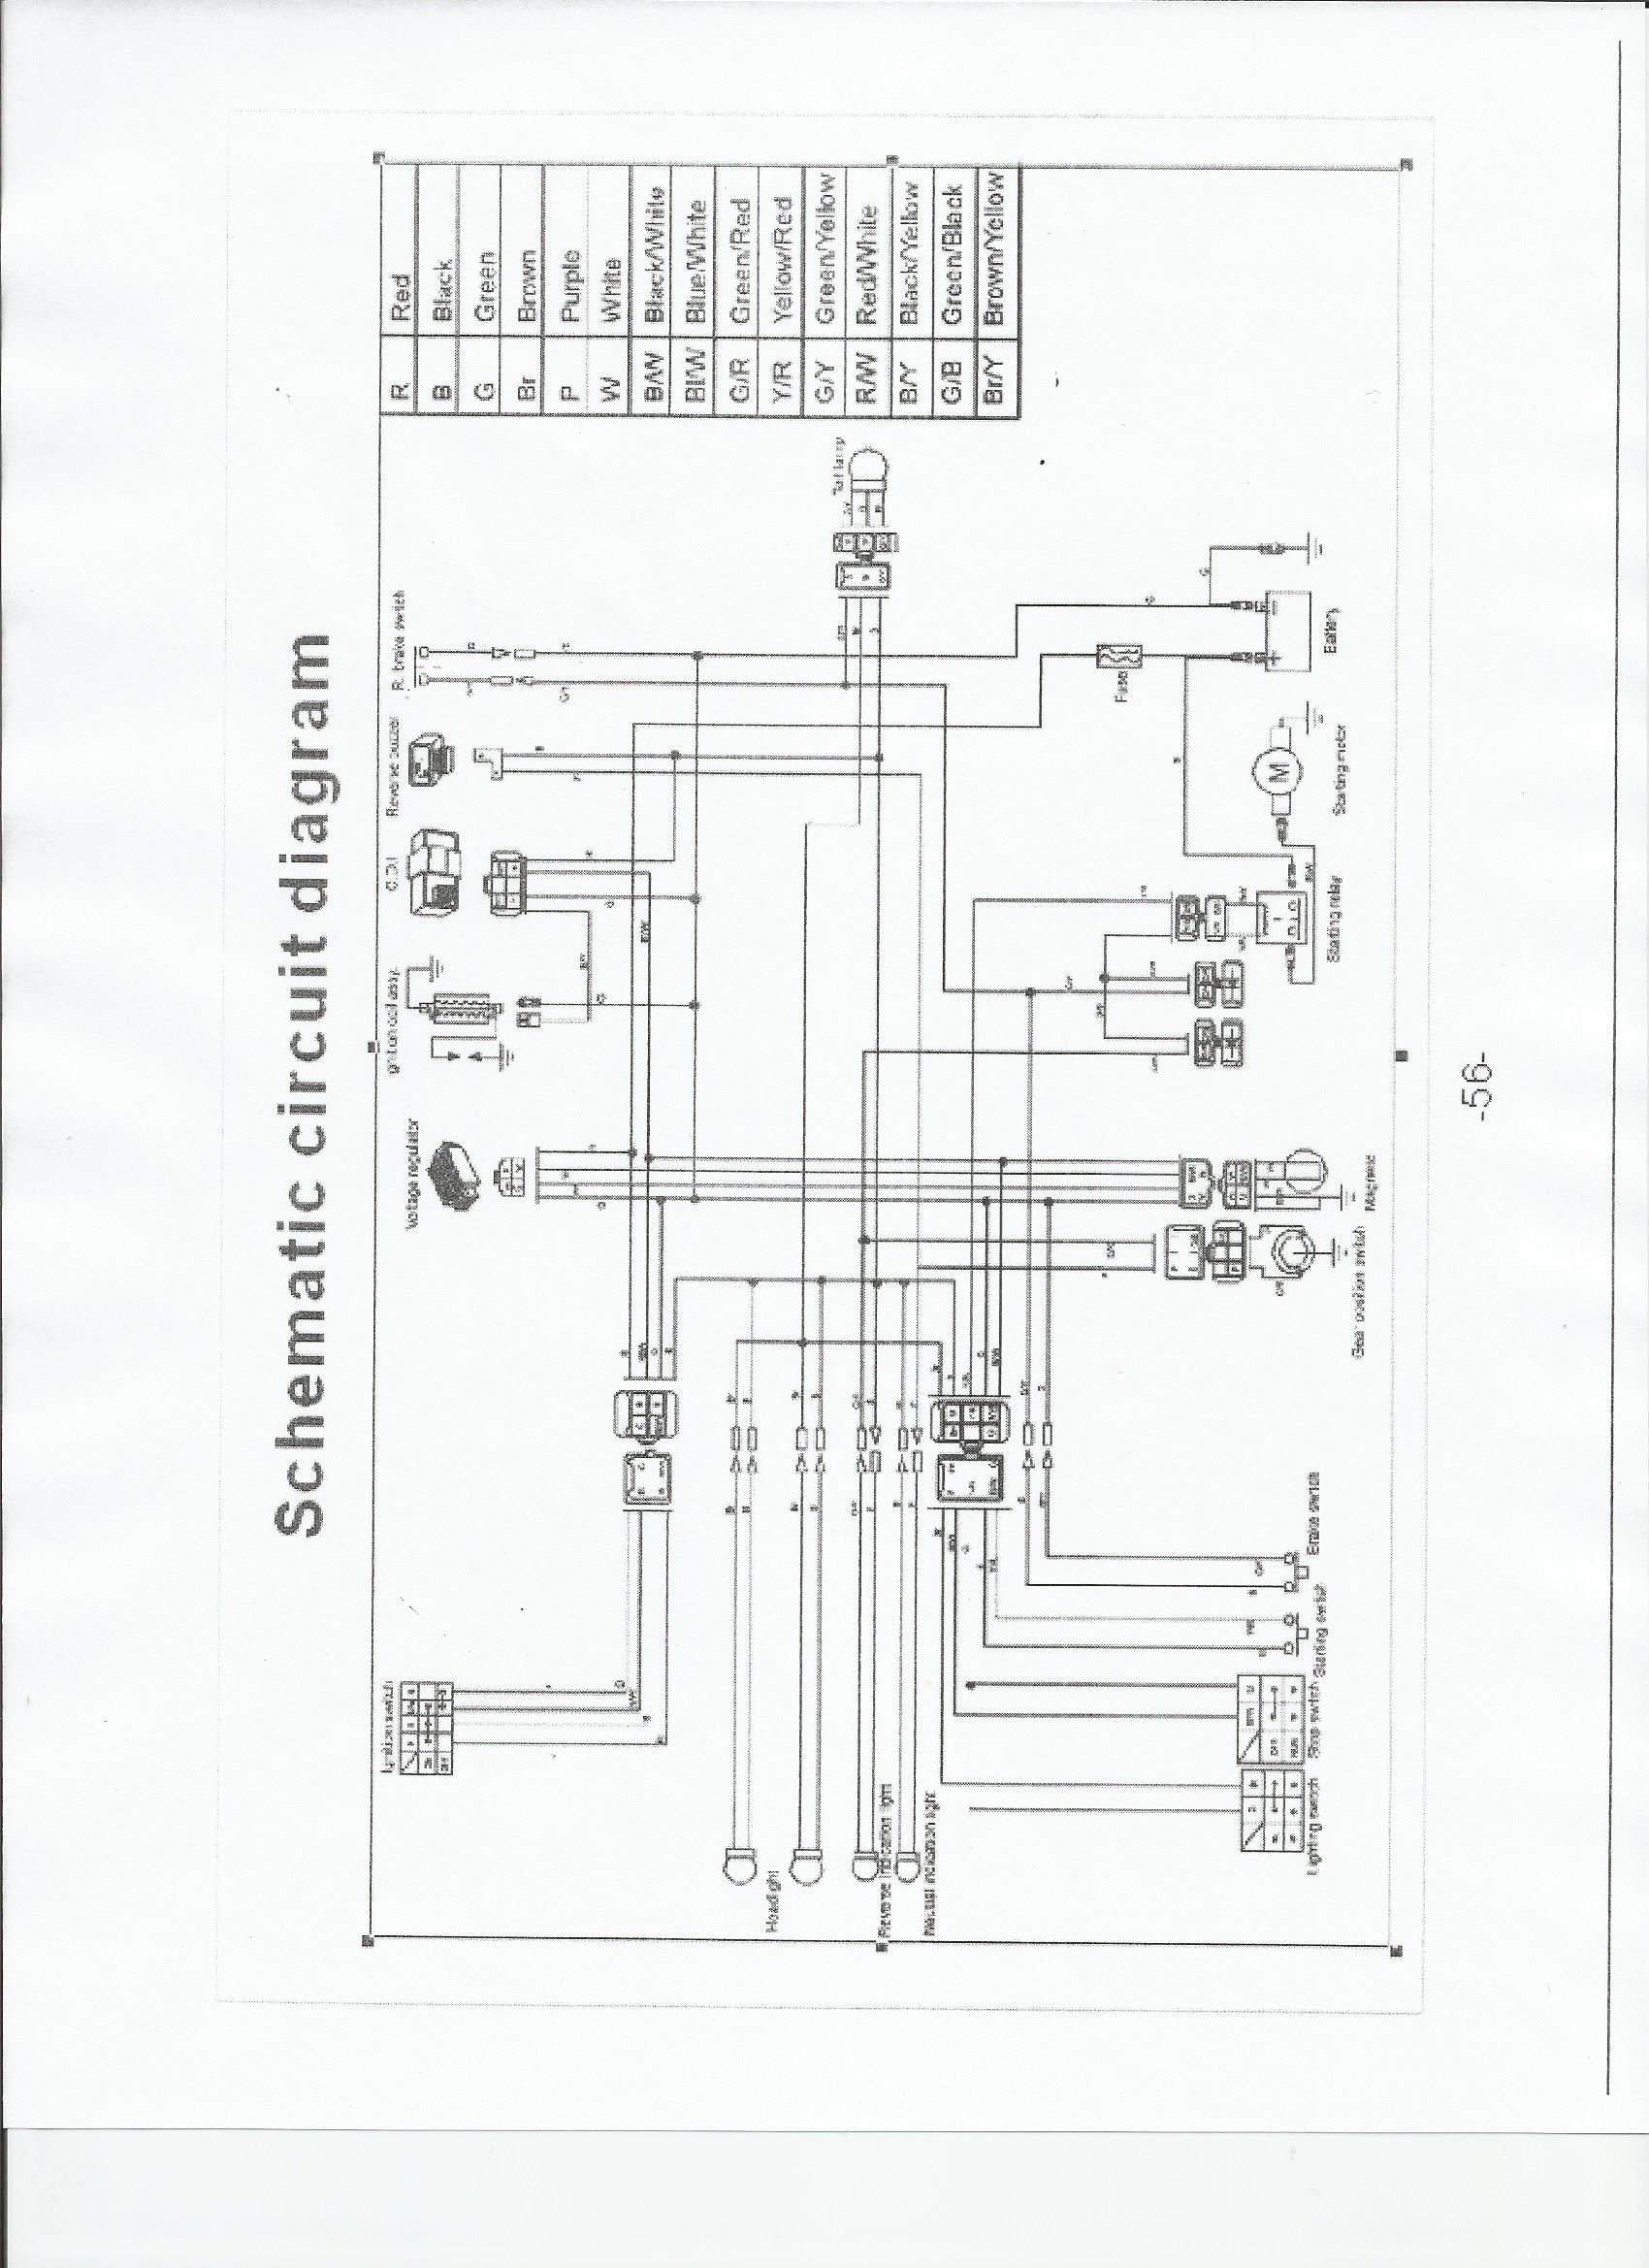 tao tao wiring schematic taotao mini and youth atv wiring schematic familygokarts support 2007 buyang 110cc atv wiring diagram at pacquiaovsvargaslive.co